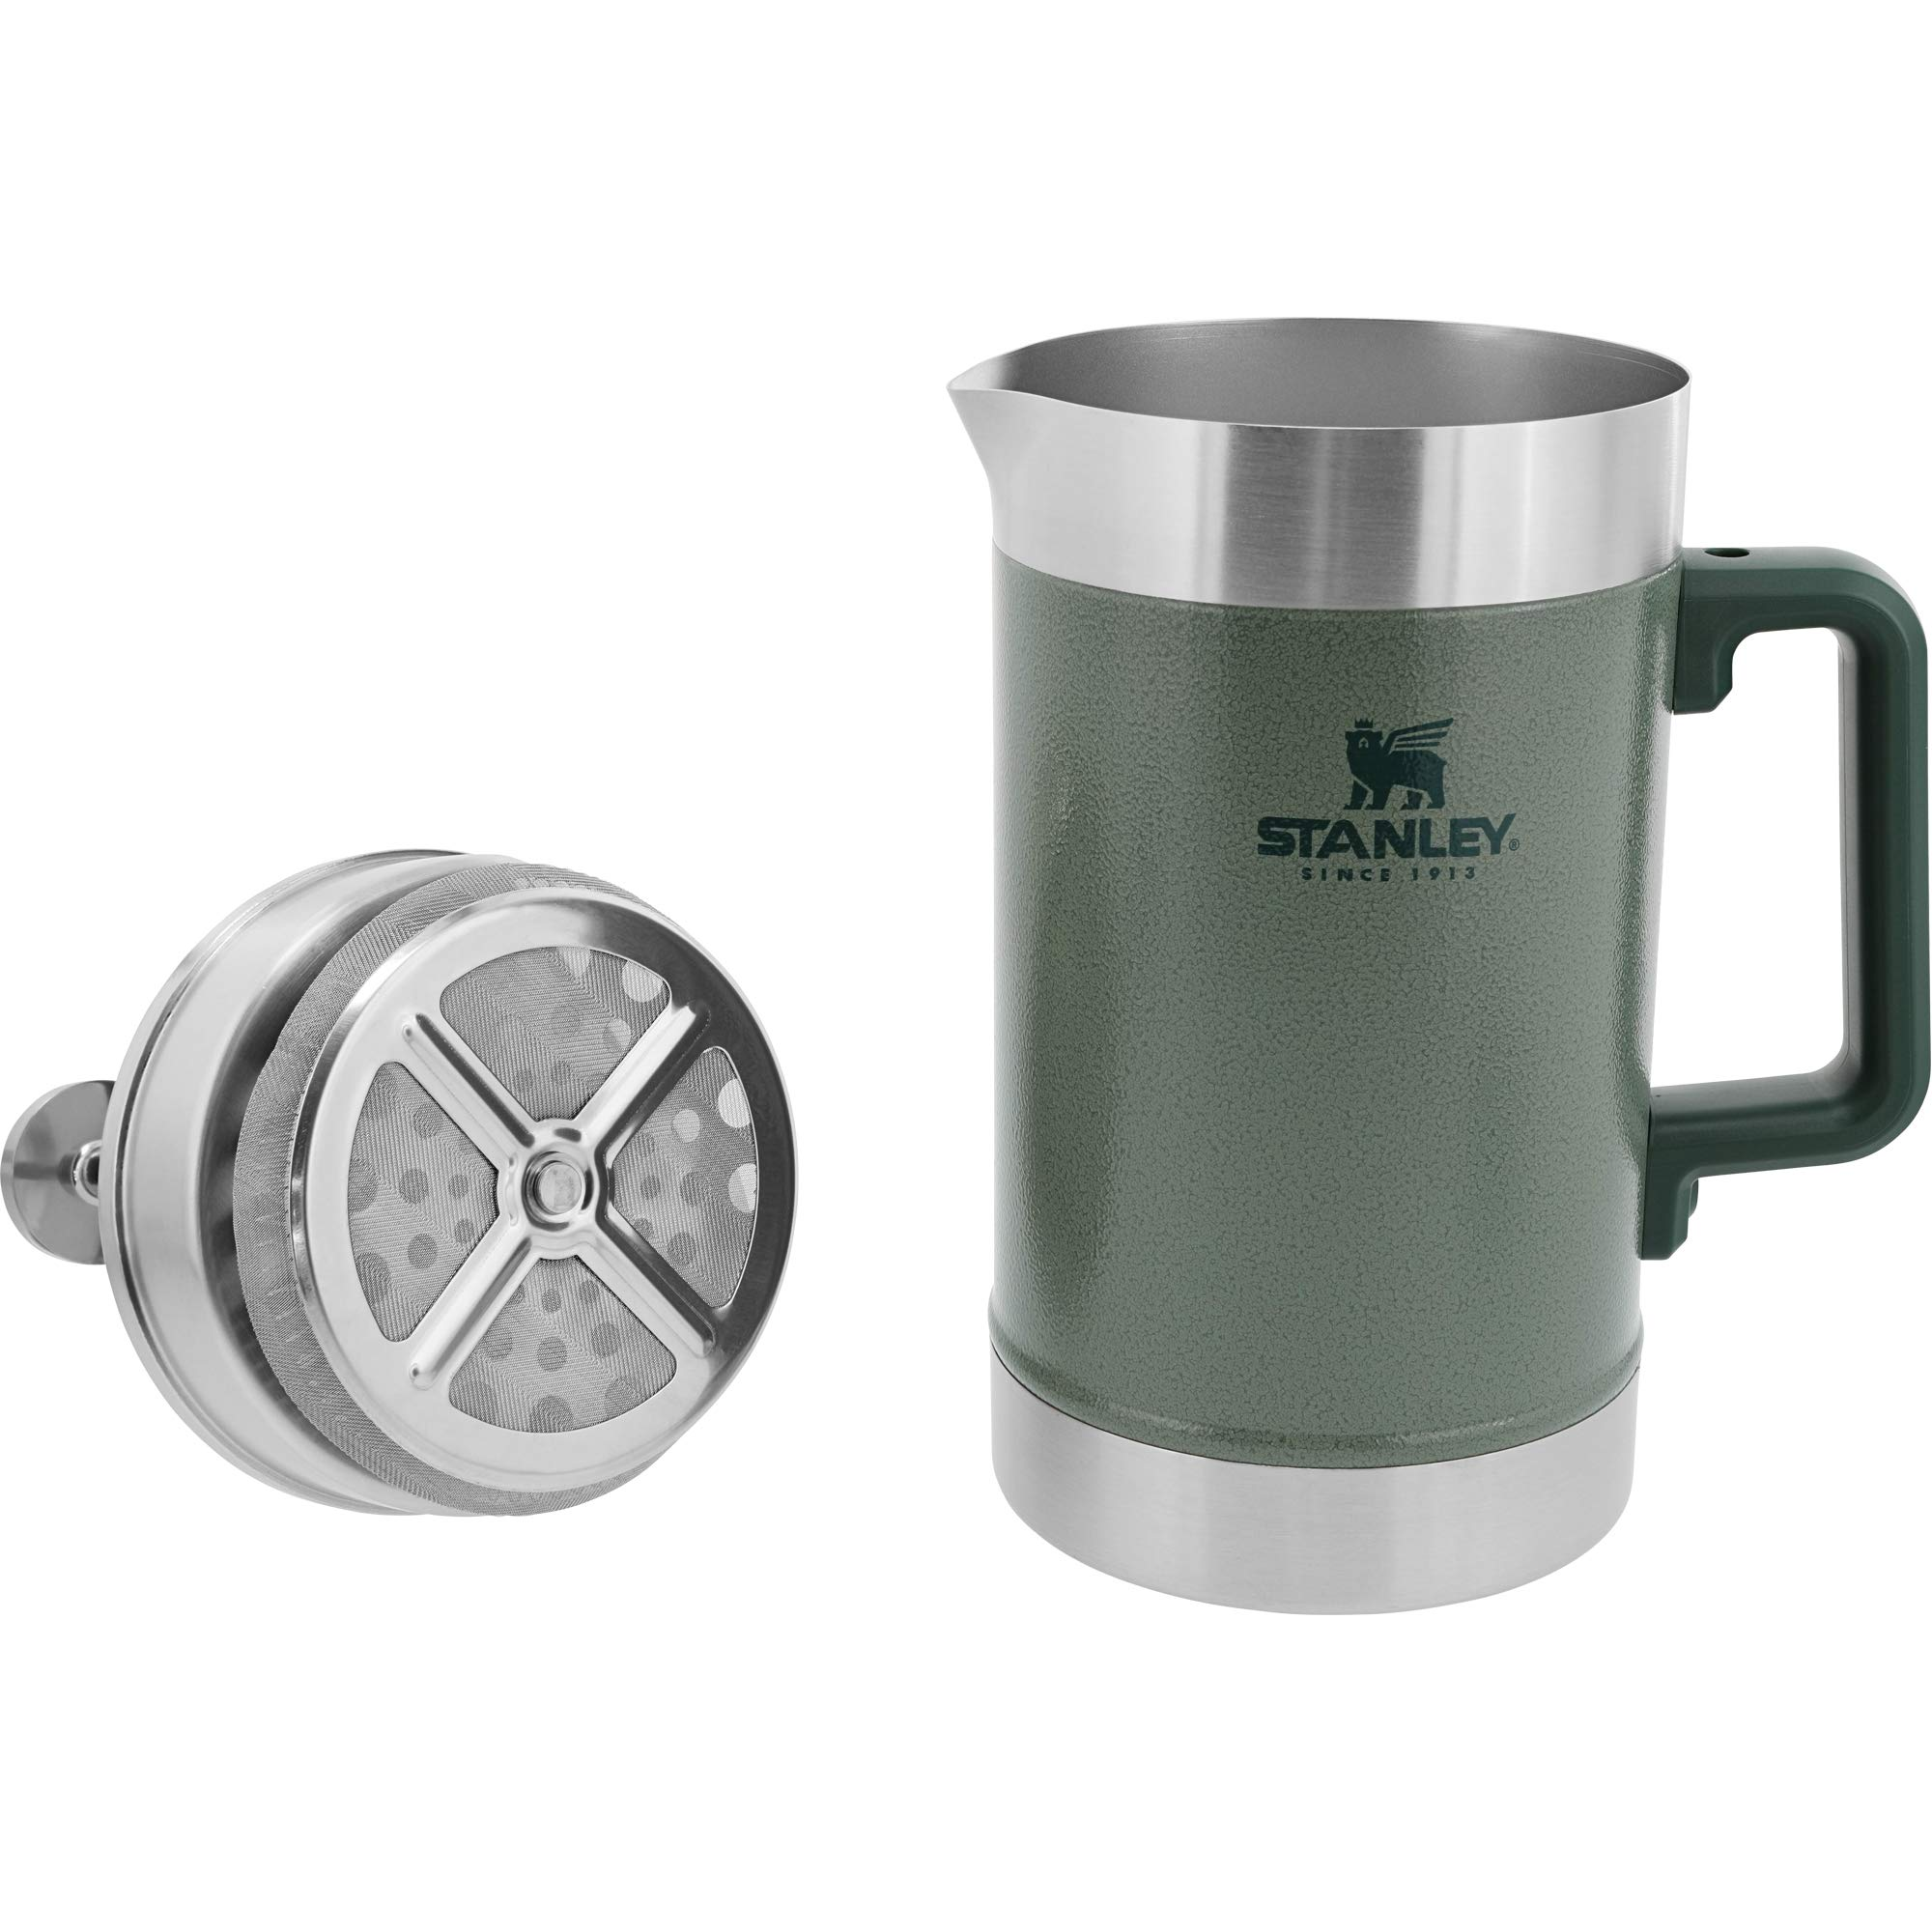 Stanley Classic Stay Hot French Press Hammertone Green 48oz by Stanley (Image #2)